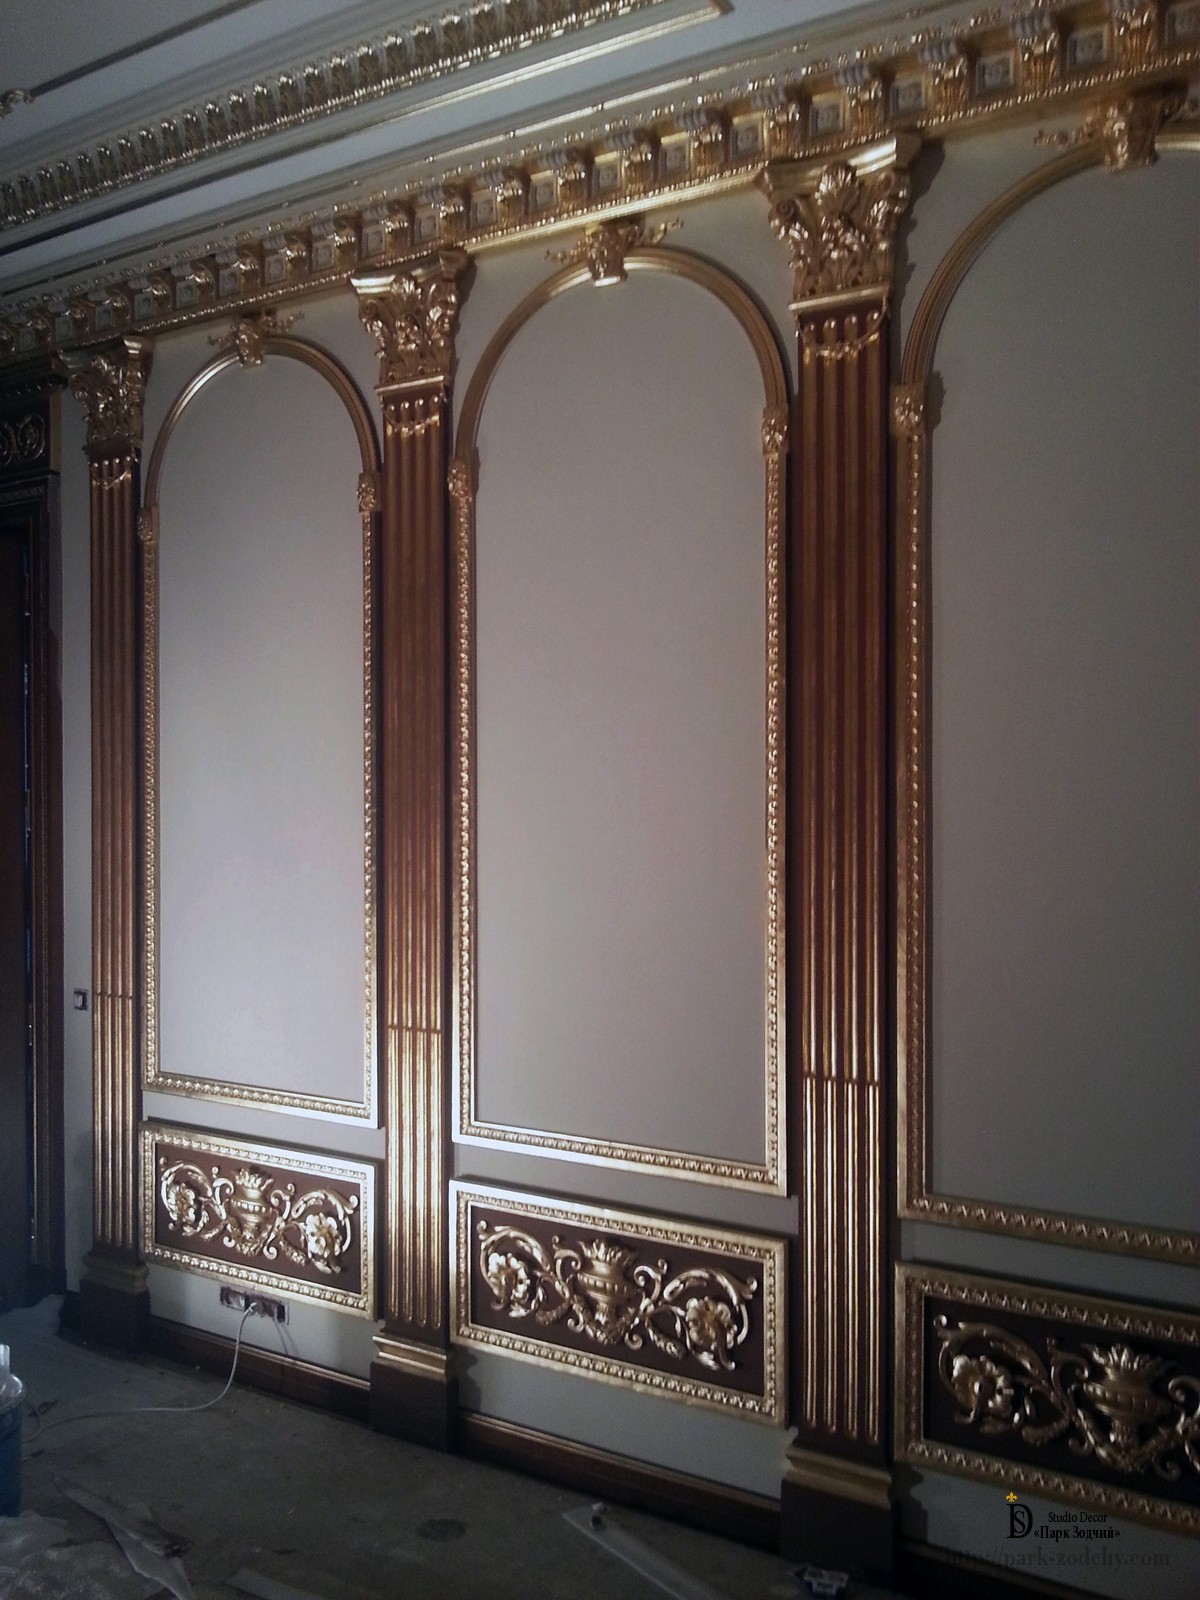 The gilding of the capitals and pilasters of plaster moldings